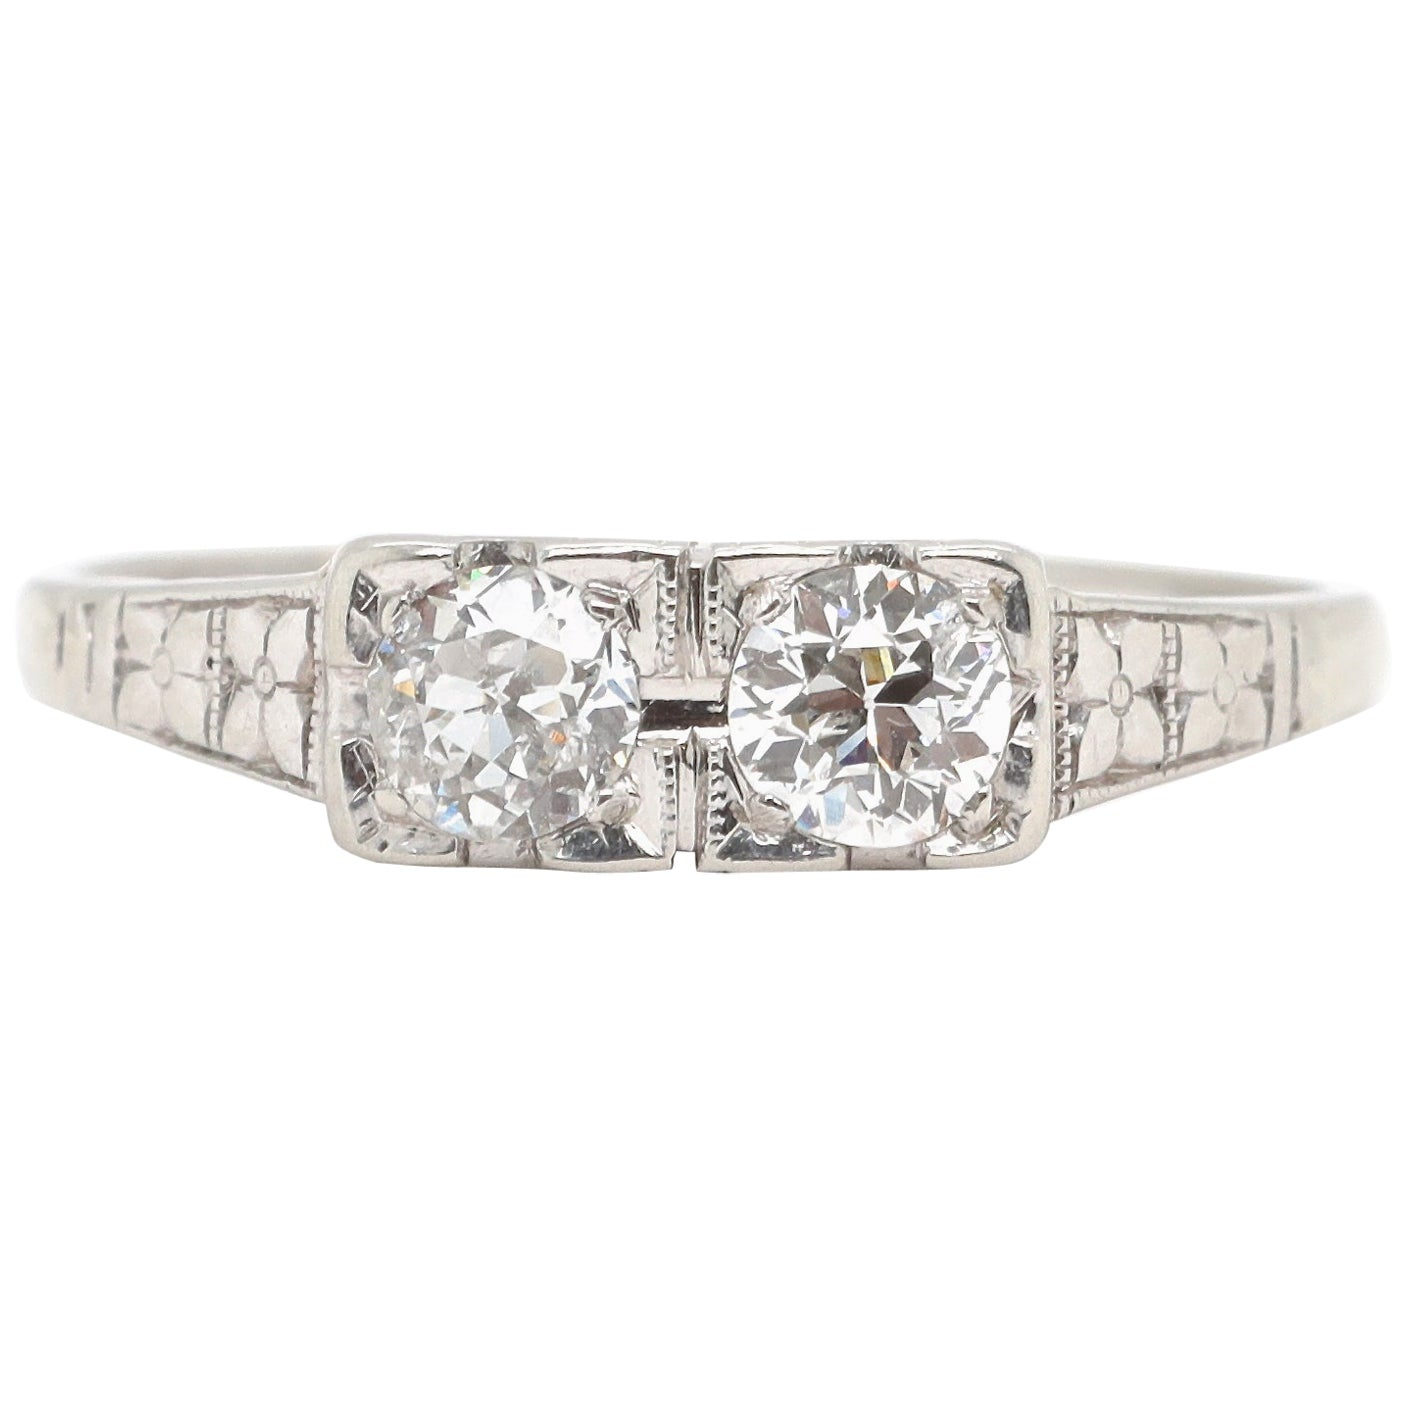 Art Deco Toi et Moi Old European Cut Diamond Platinum Ring